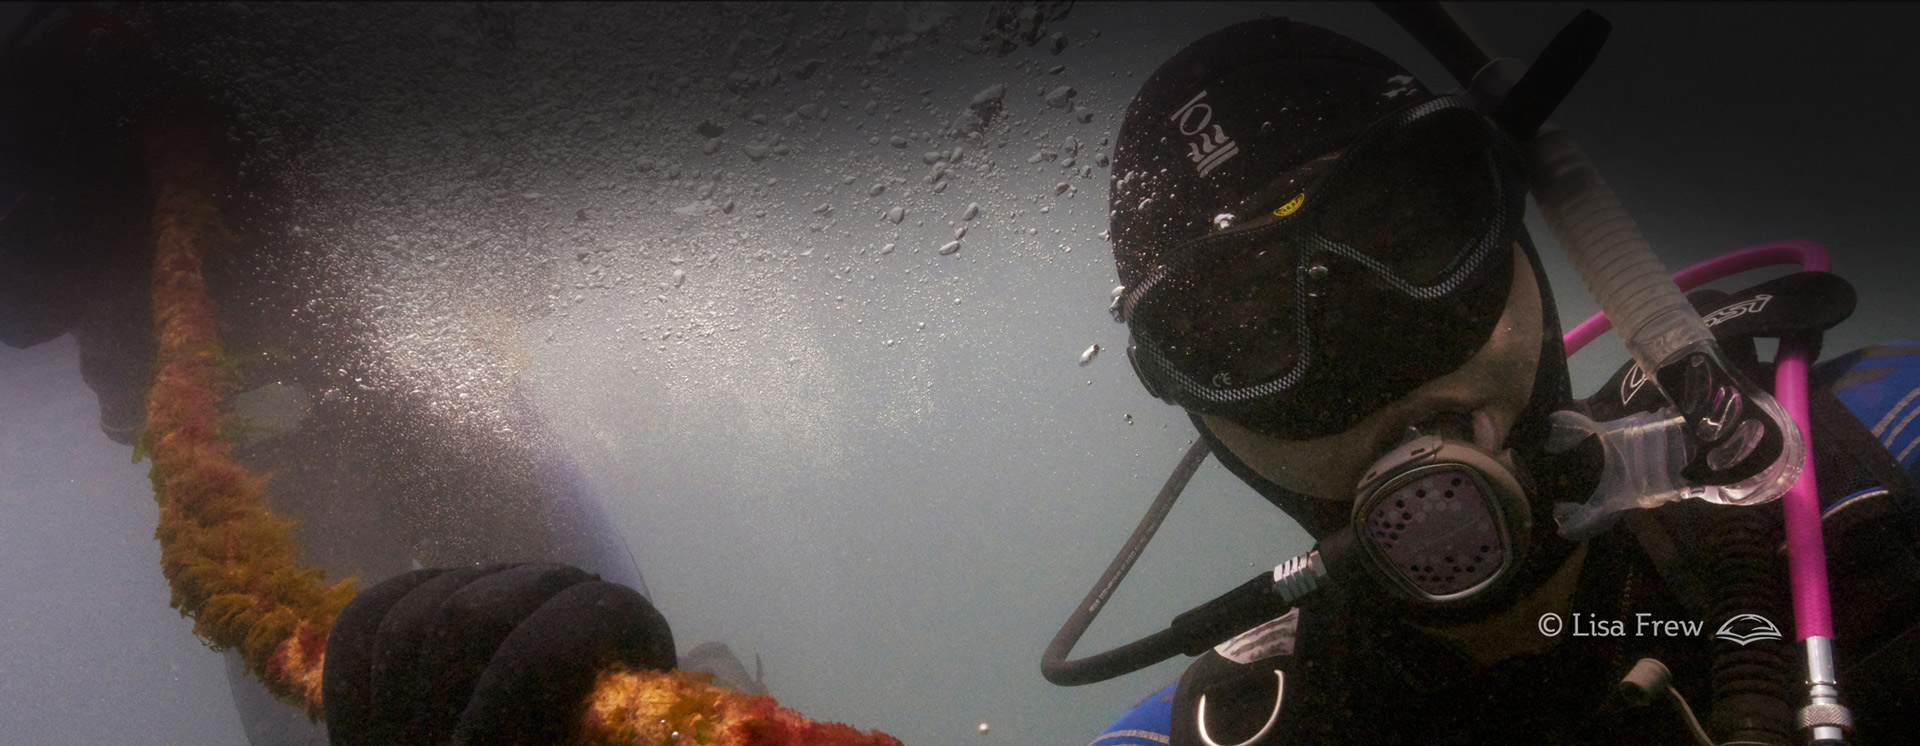 Image of diver on PADI Advanced Open Water diver course